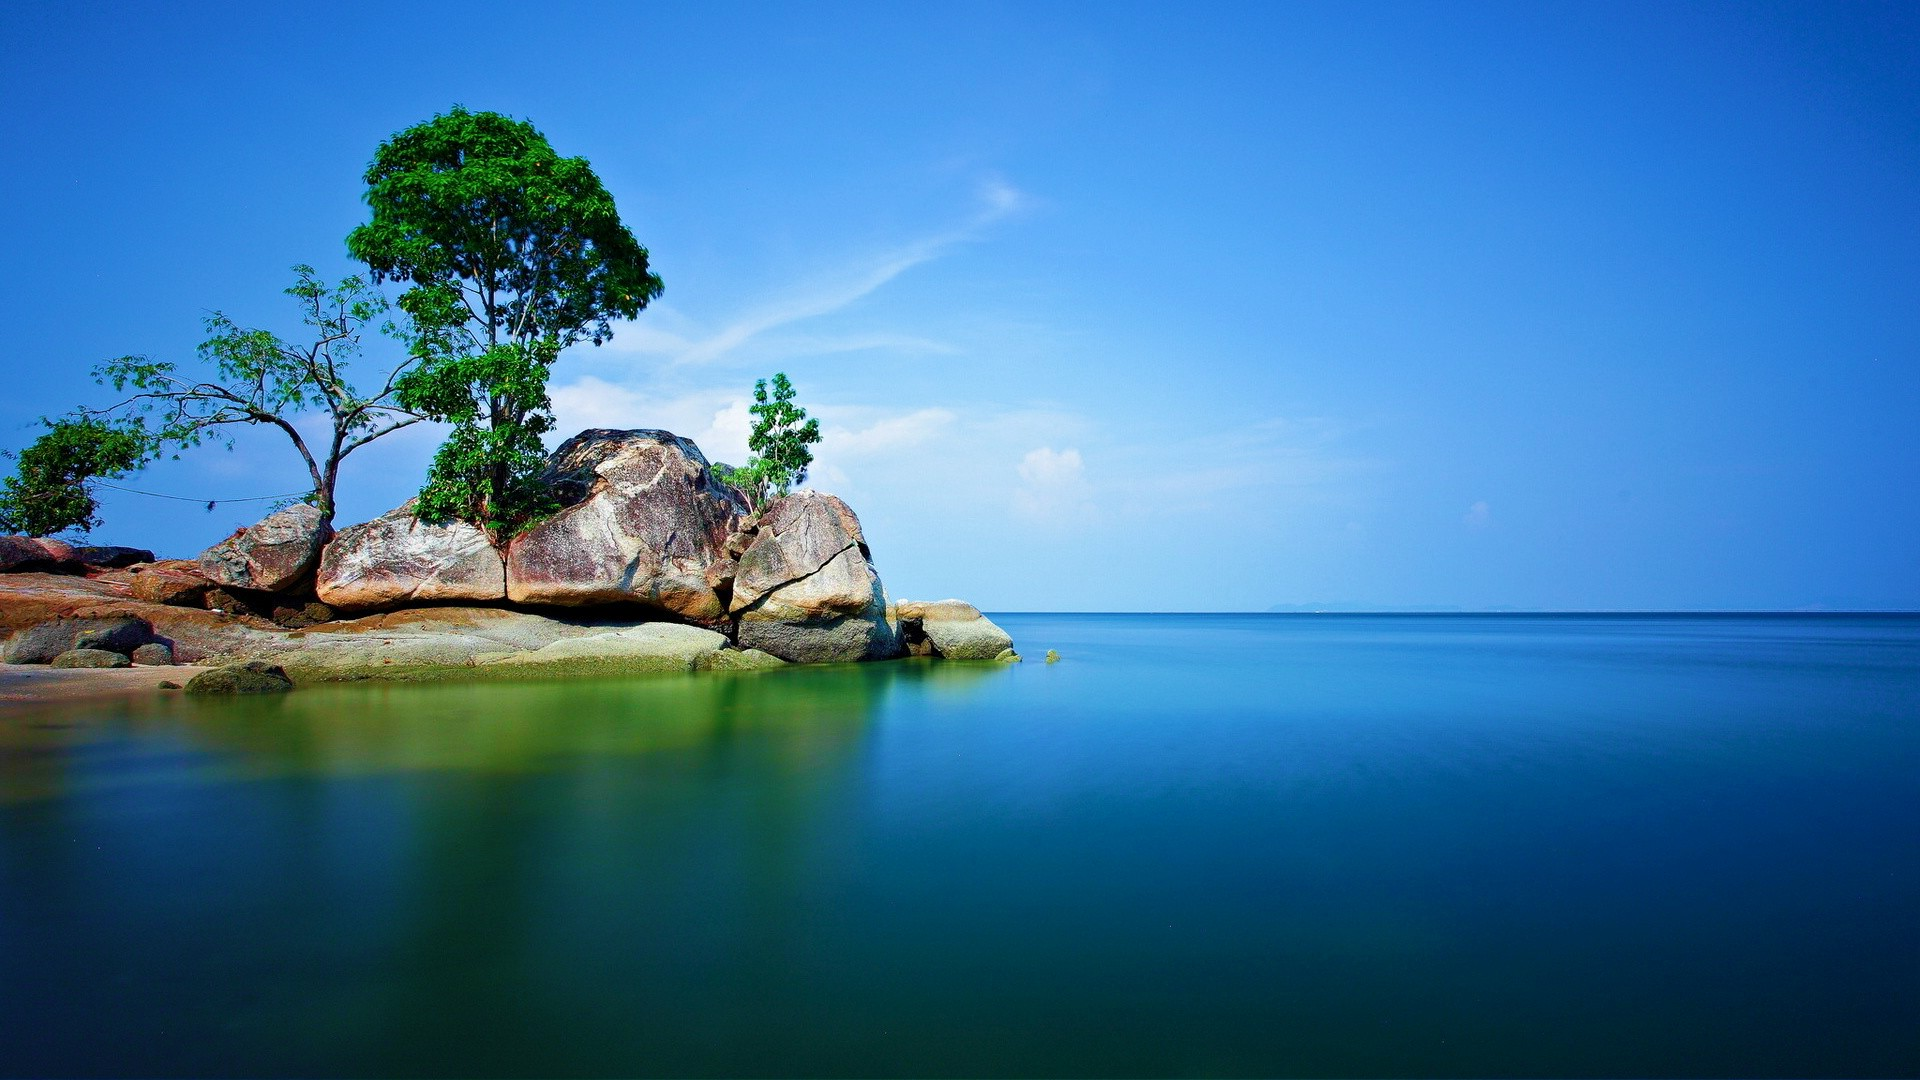 Hd Fantasy Girl Wallpapers 1080p Rock Trees Sea Nature Alone Landscape Wallpapers Hd